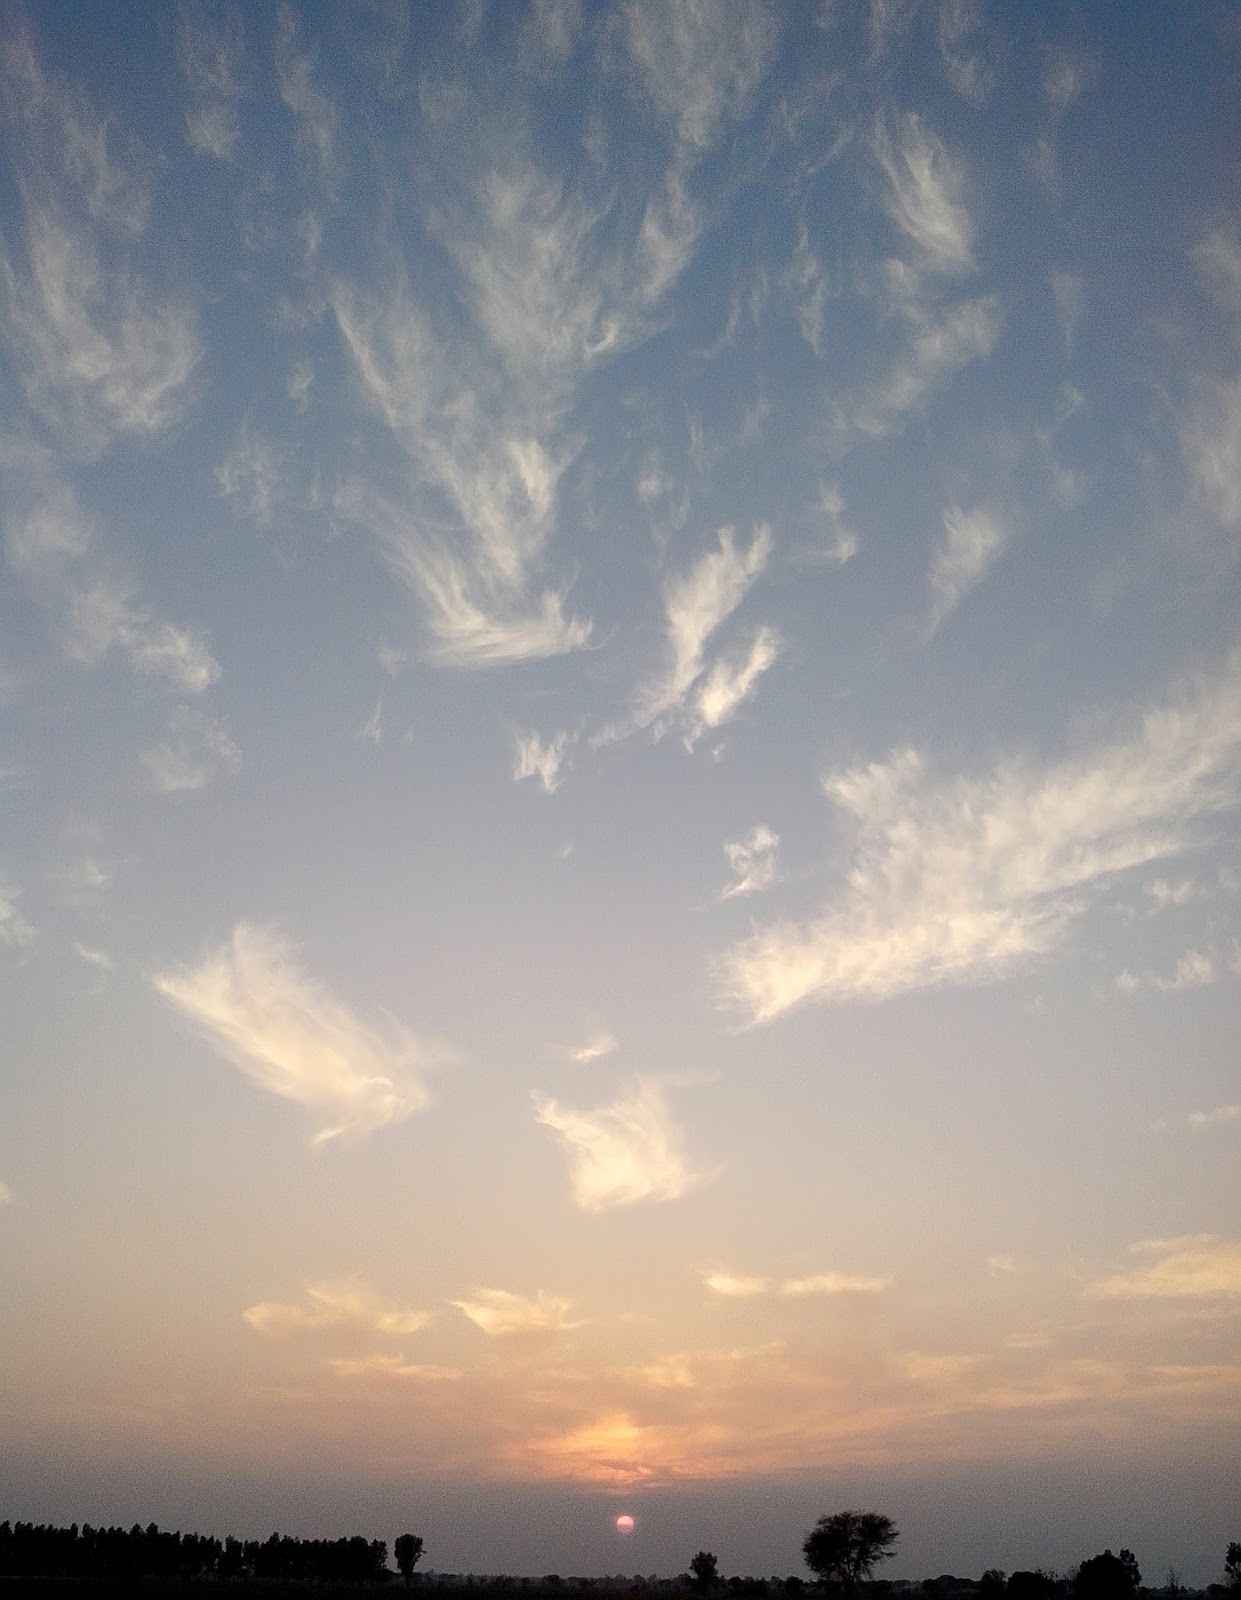 writings-in-sky-pakistan